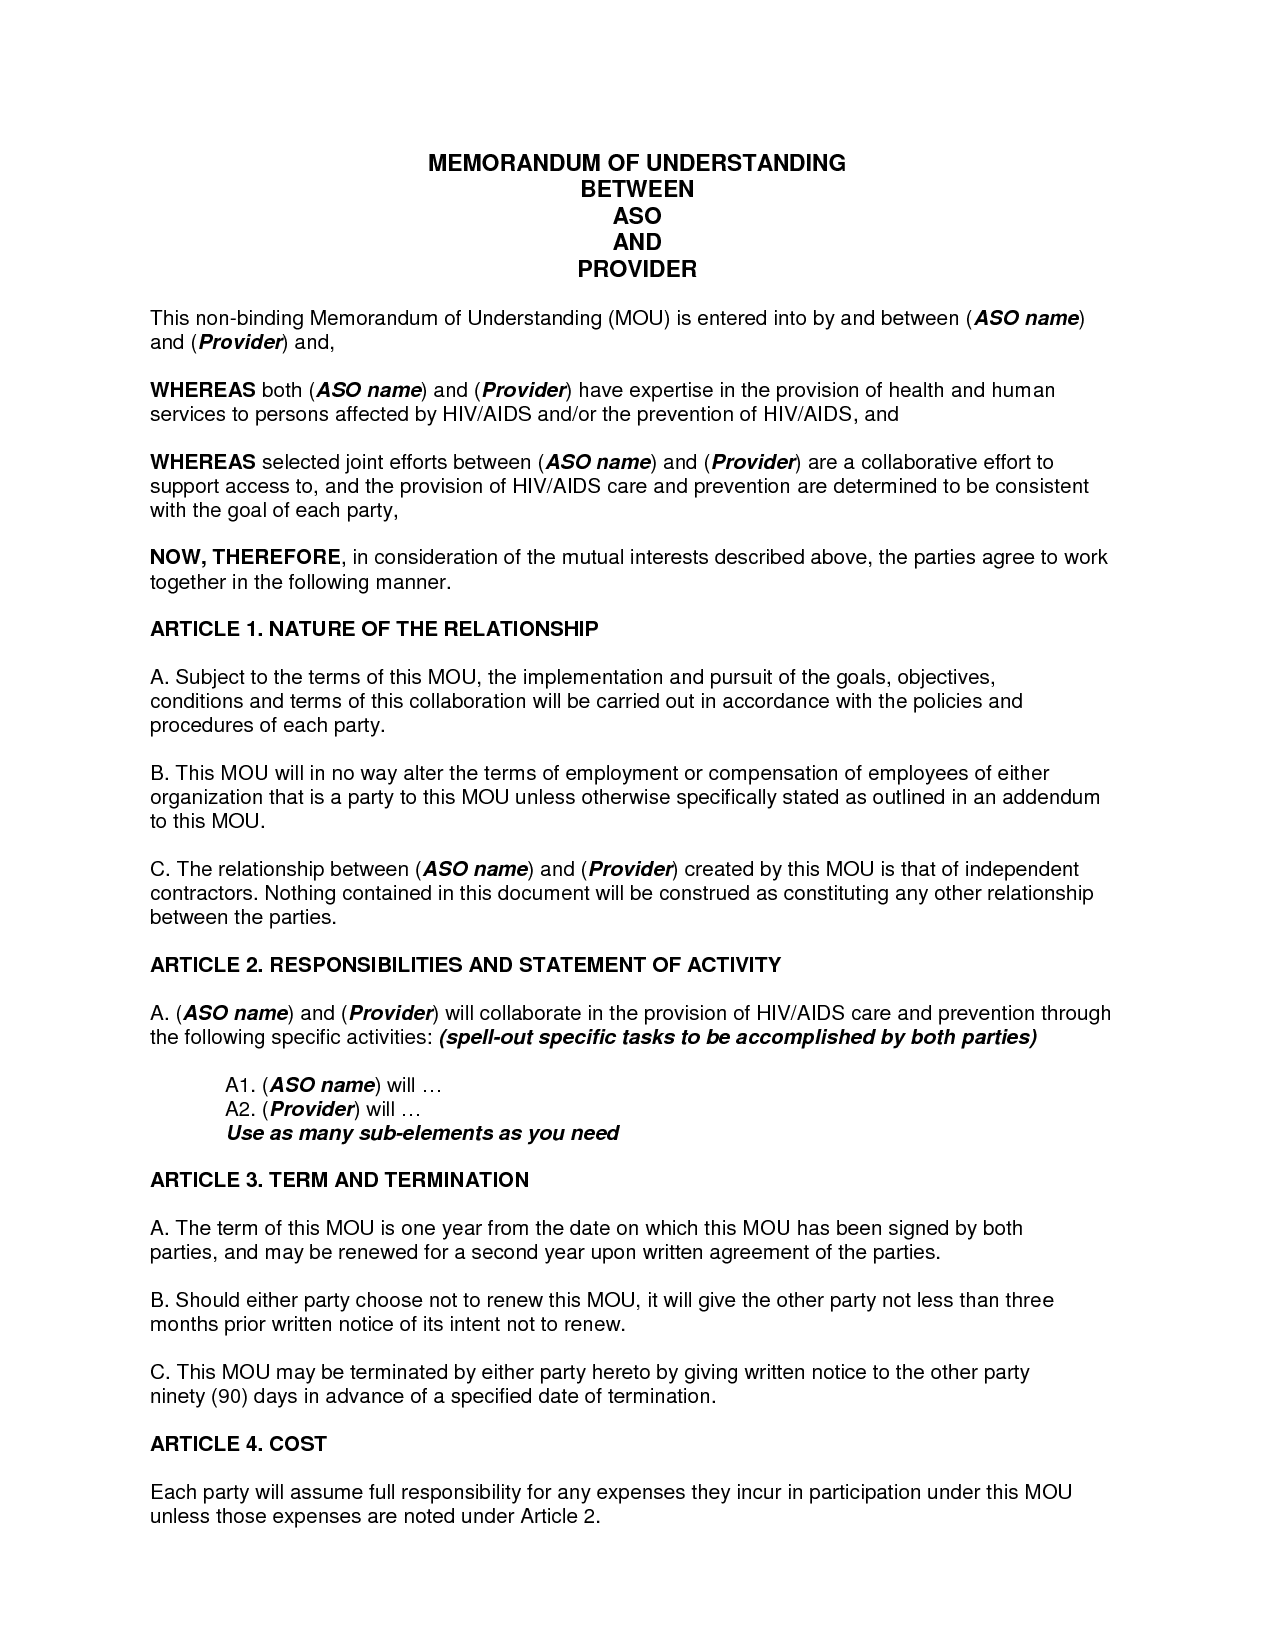 Sample memorandum of understanding business partnership doc by sample memorandum of understanding business partnership doc by m o u sample thecheapjerseys Image collections